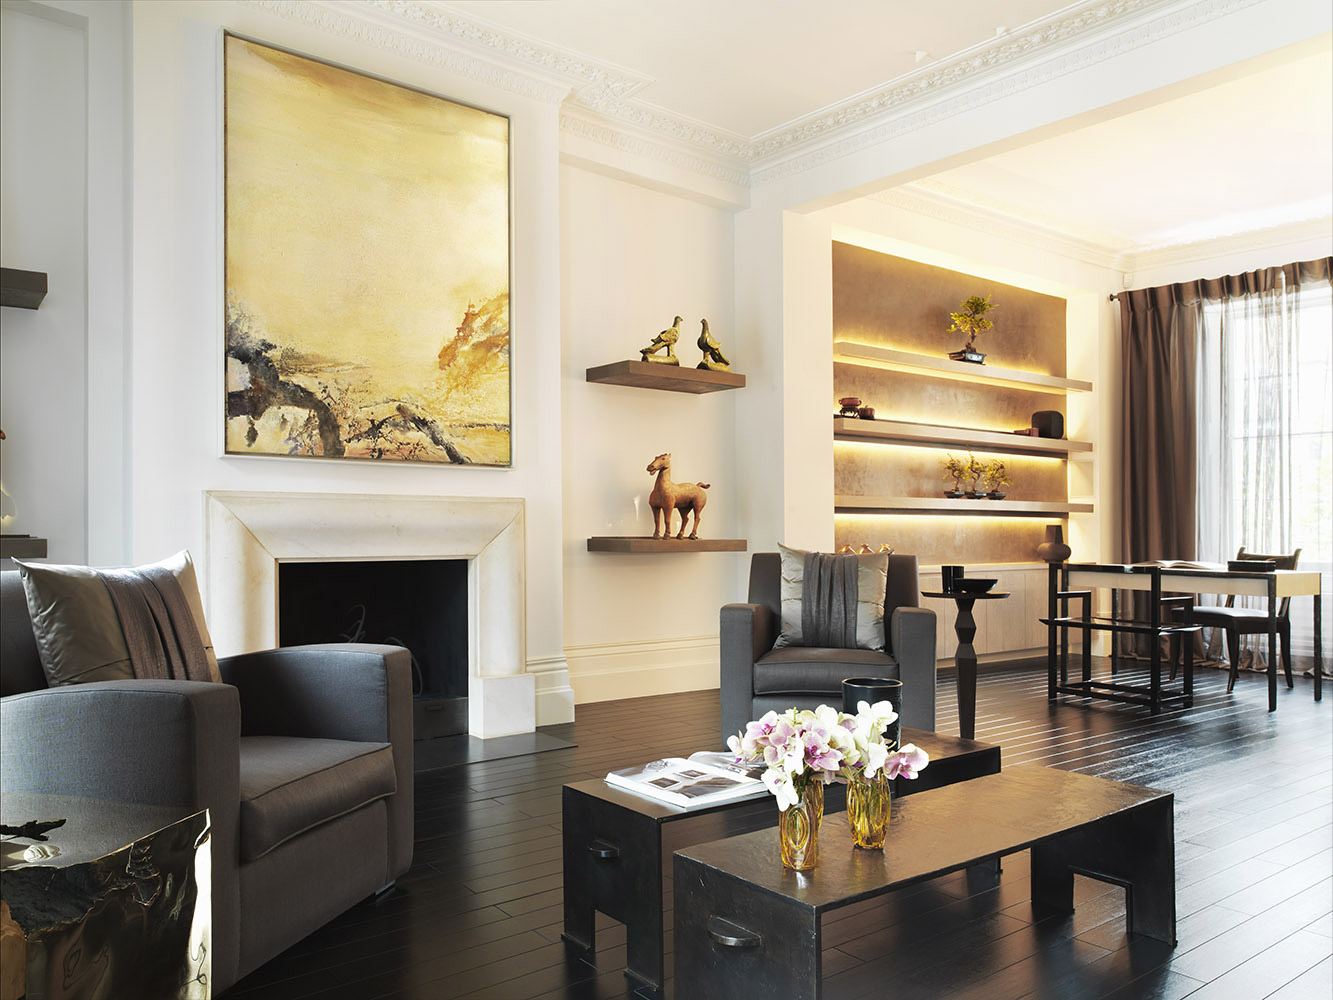 Top 10 kelly hoppen design ideas for The interior designer